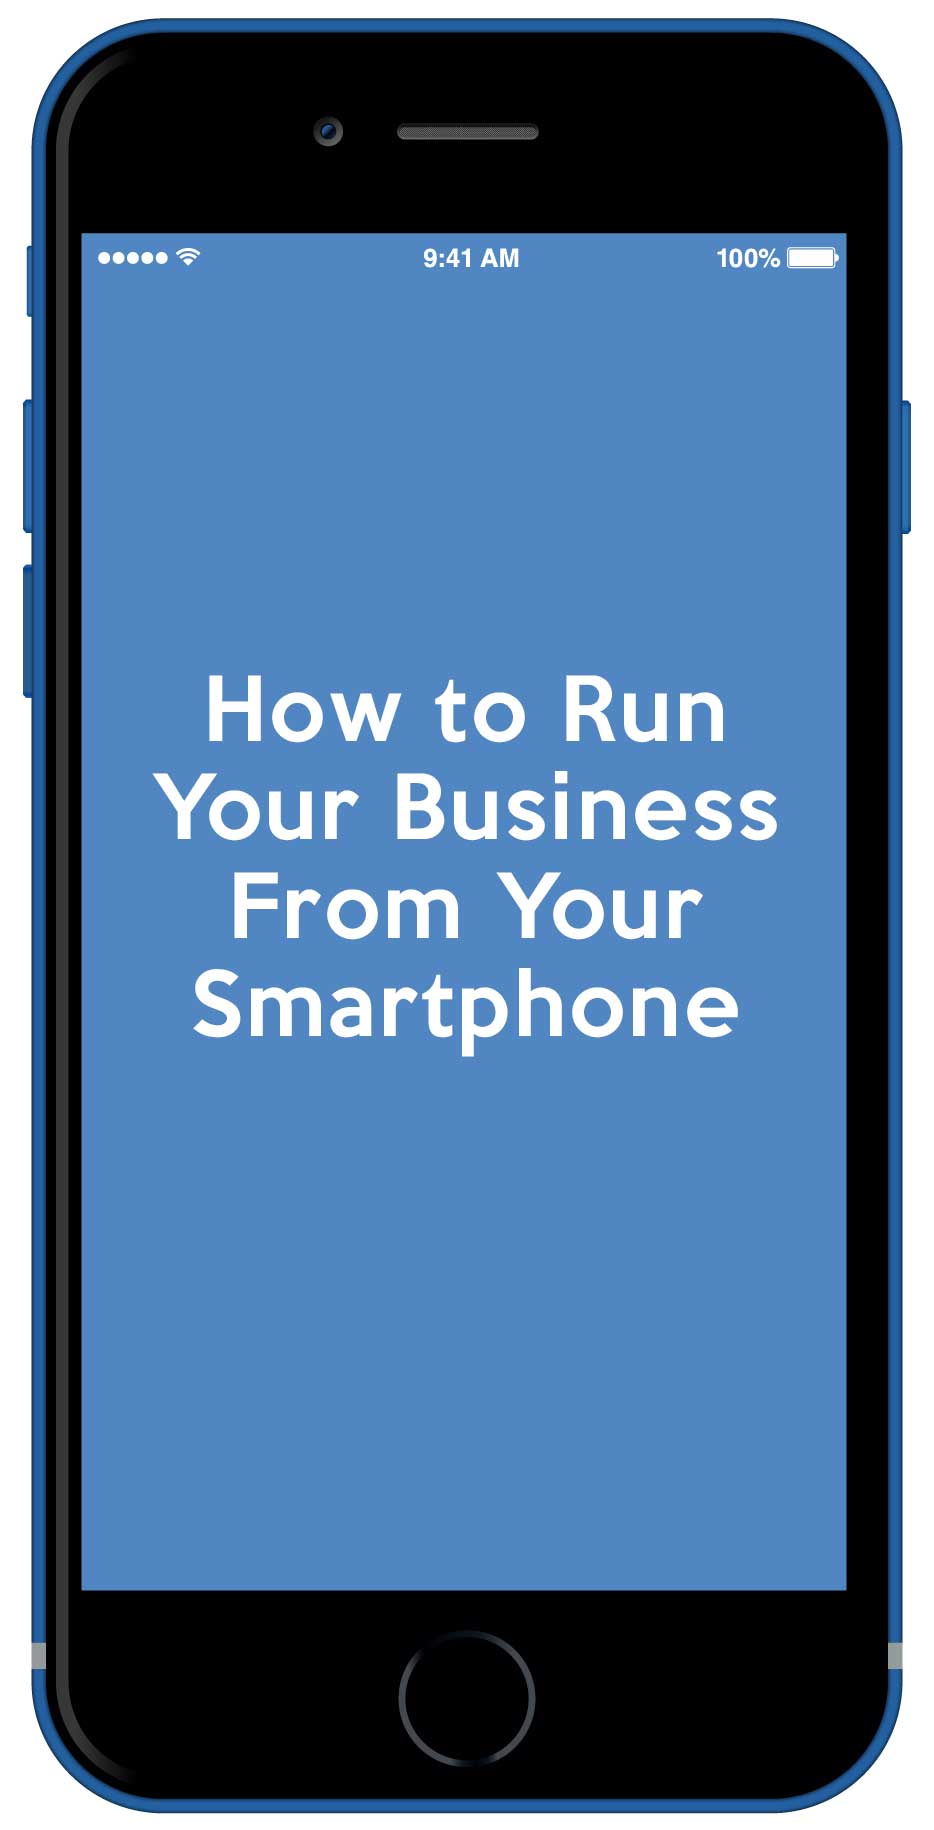 How to Run Your Business From Your Smartphone